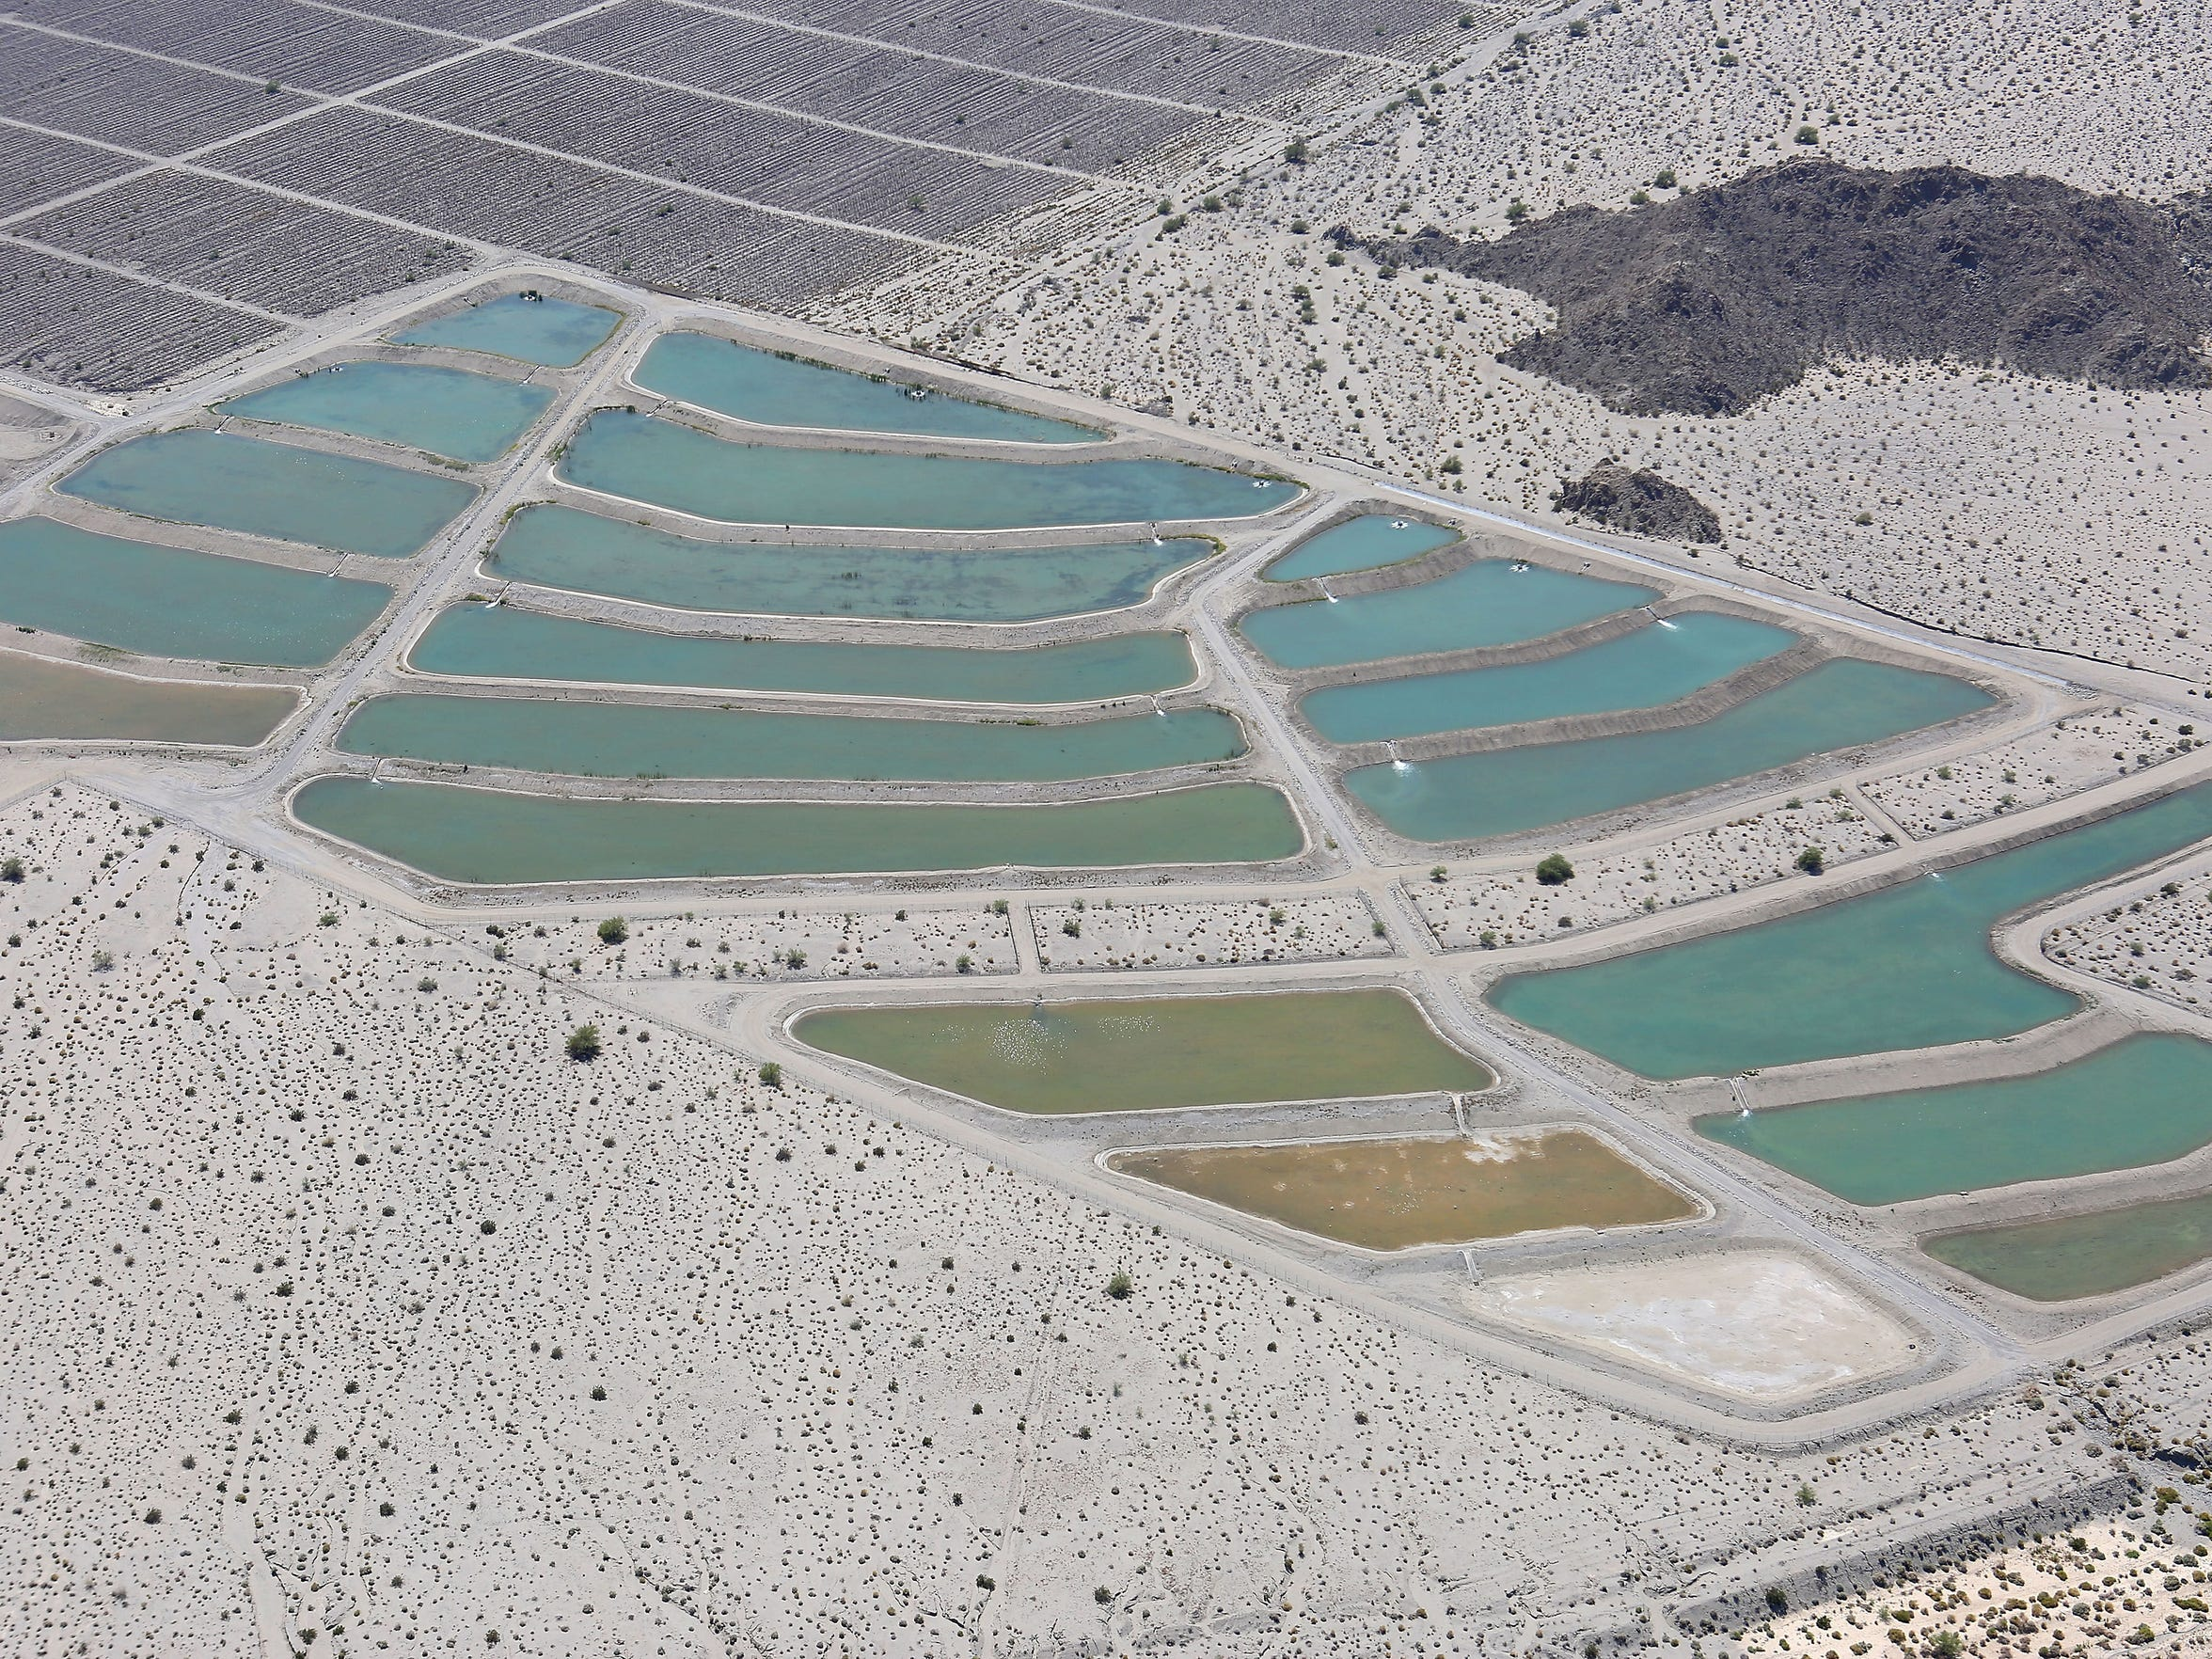 water project april 2015 46.JPG